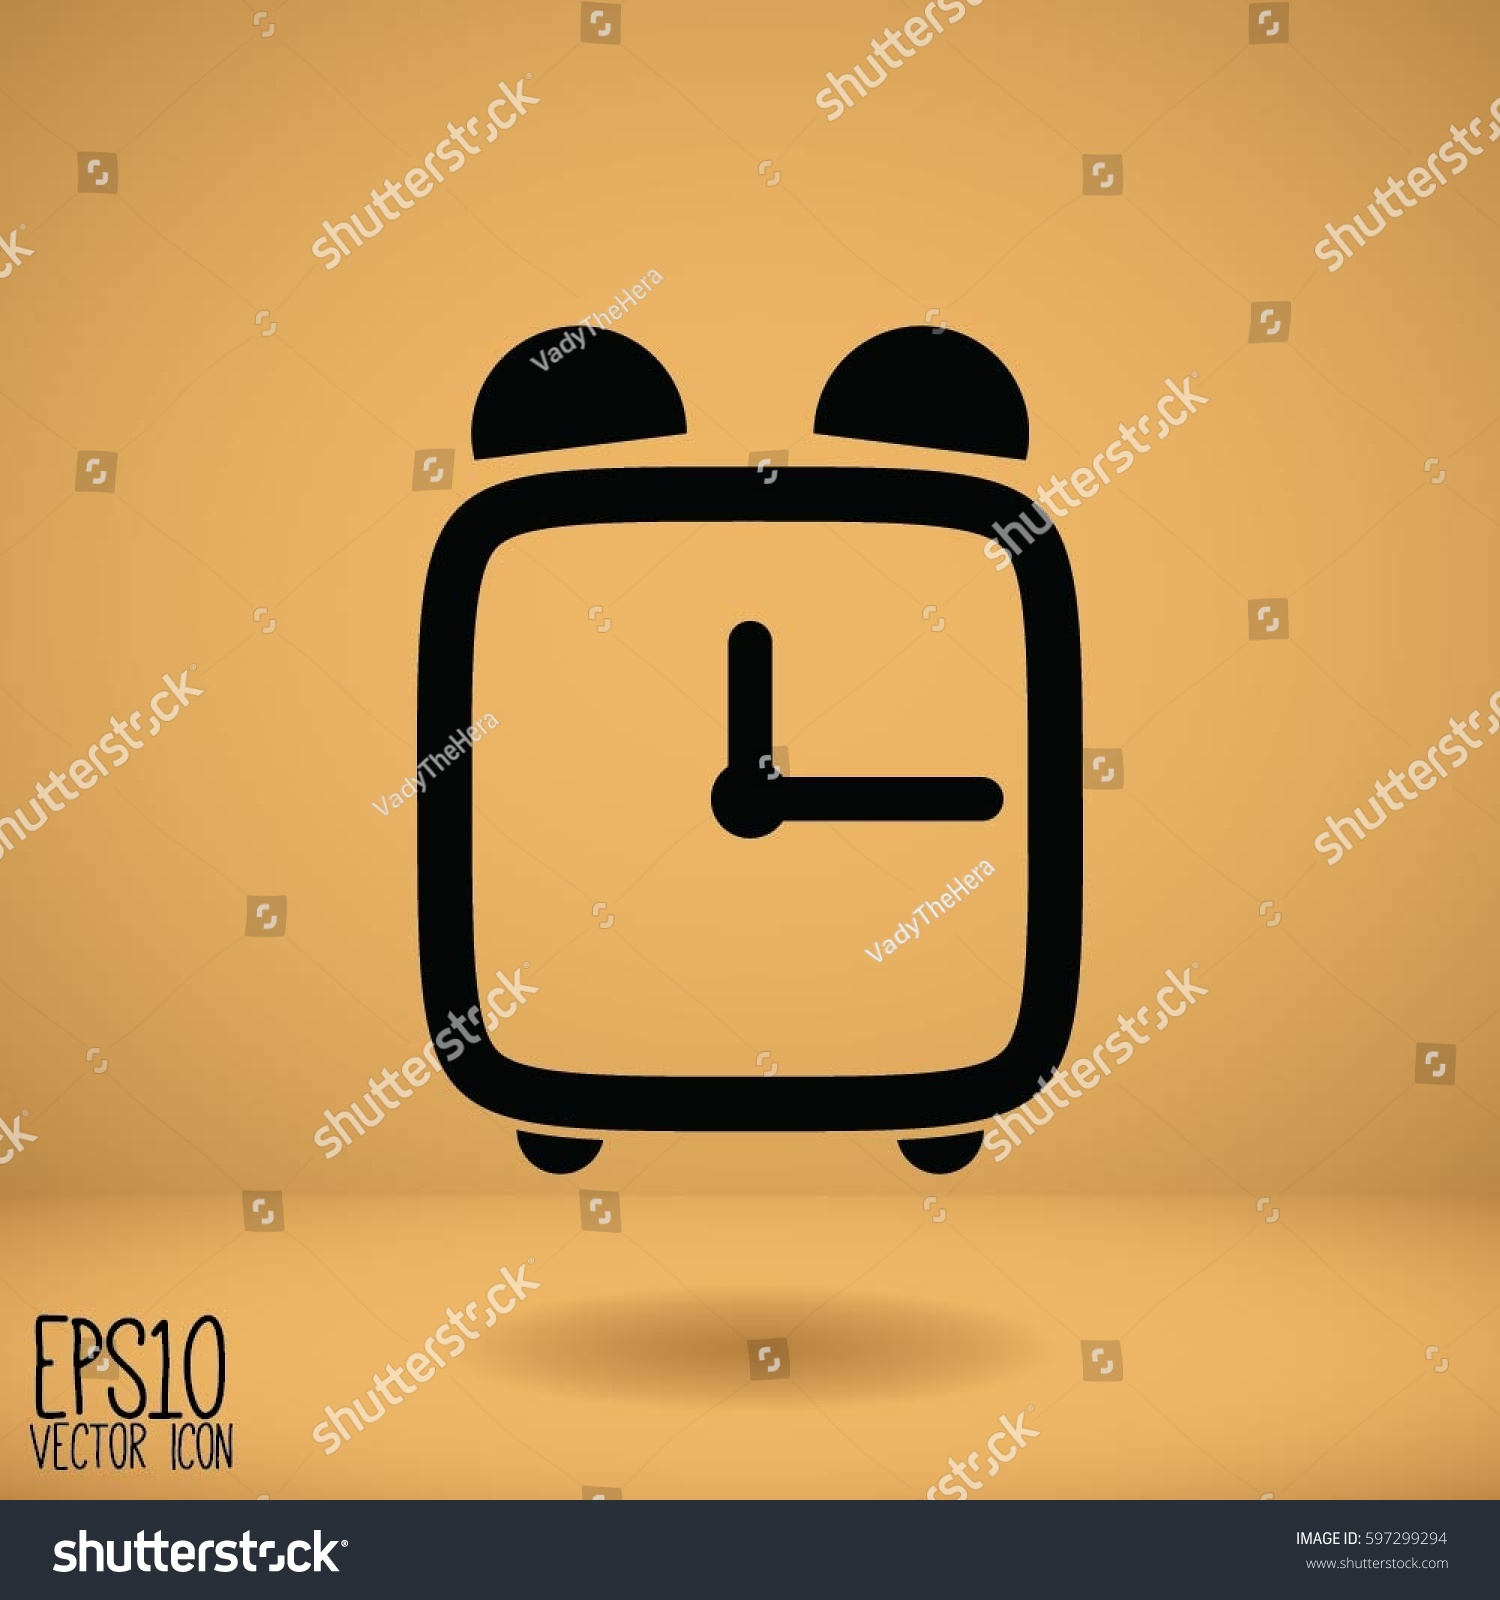 Alarm Clock Flat Style Graphic Web Stock Vector (Royalty Free